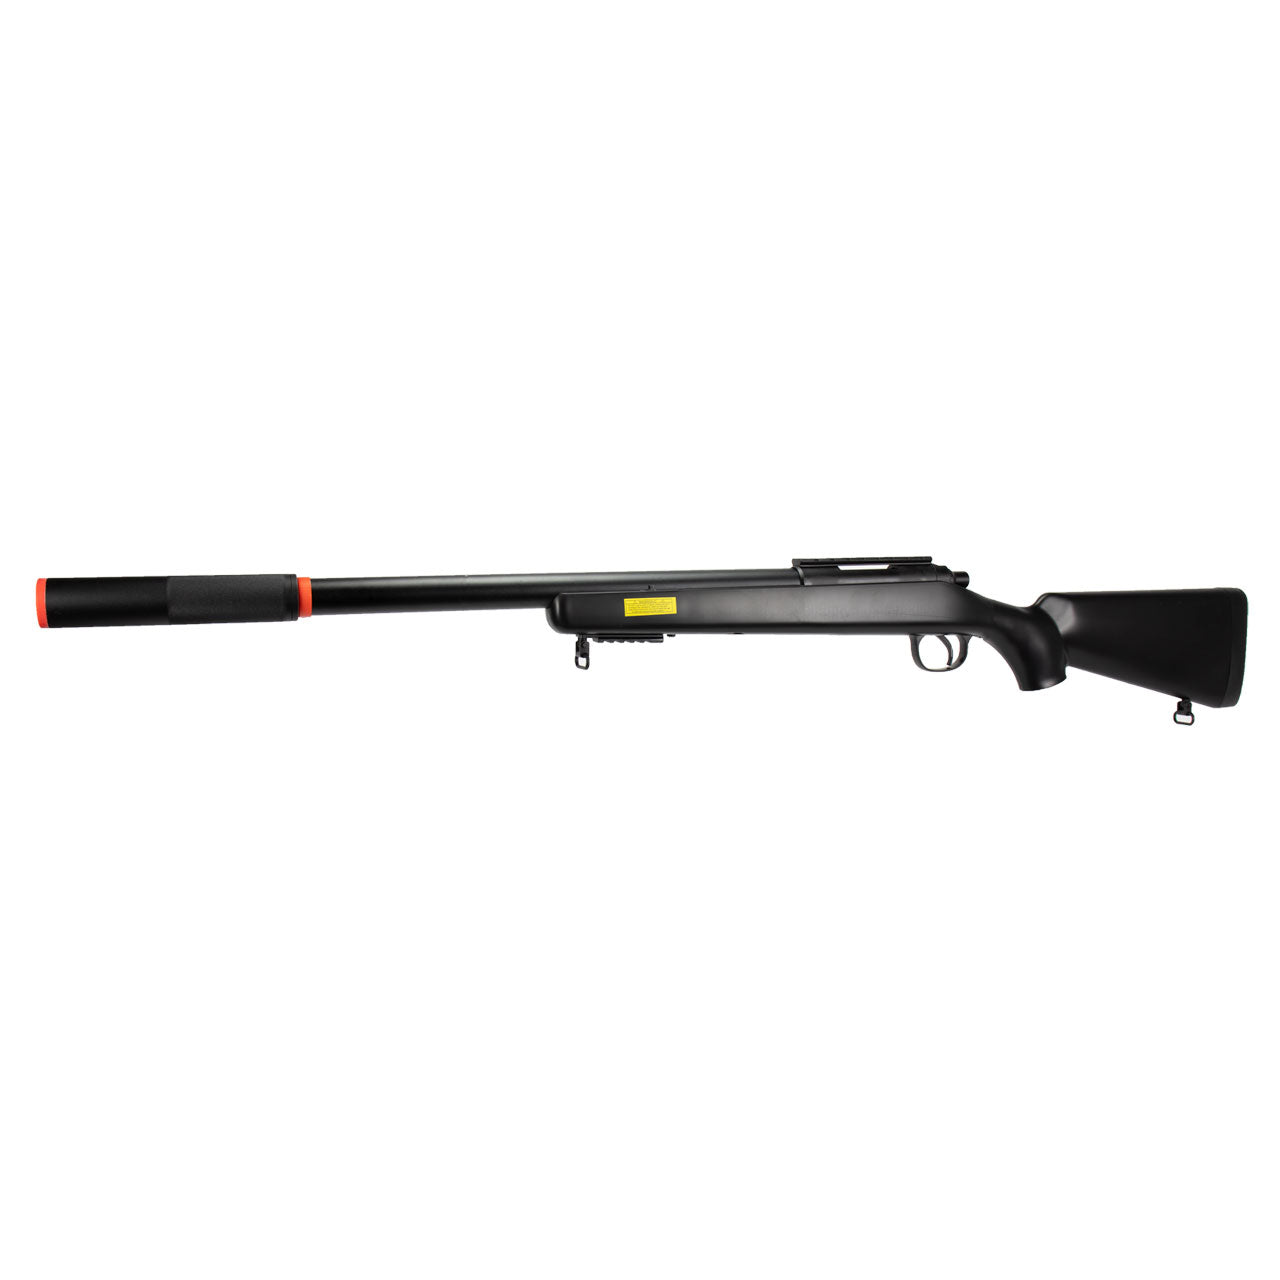 WELL VSR10 G-Spec Bolt Action Spring Sniper Rifle